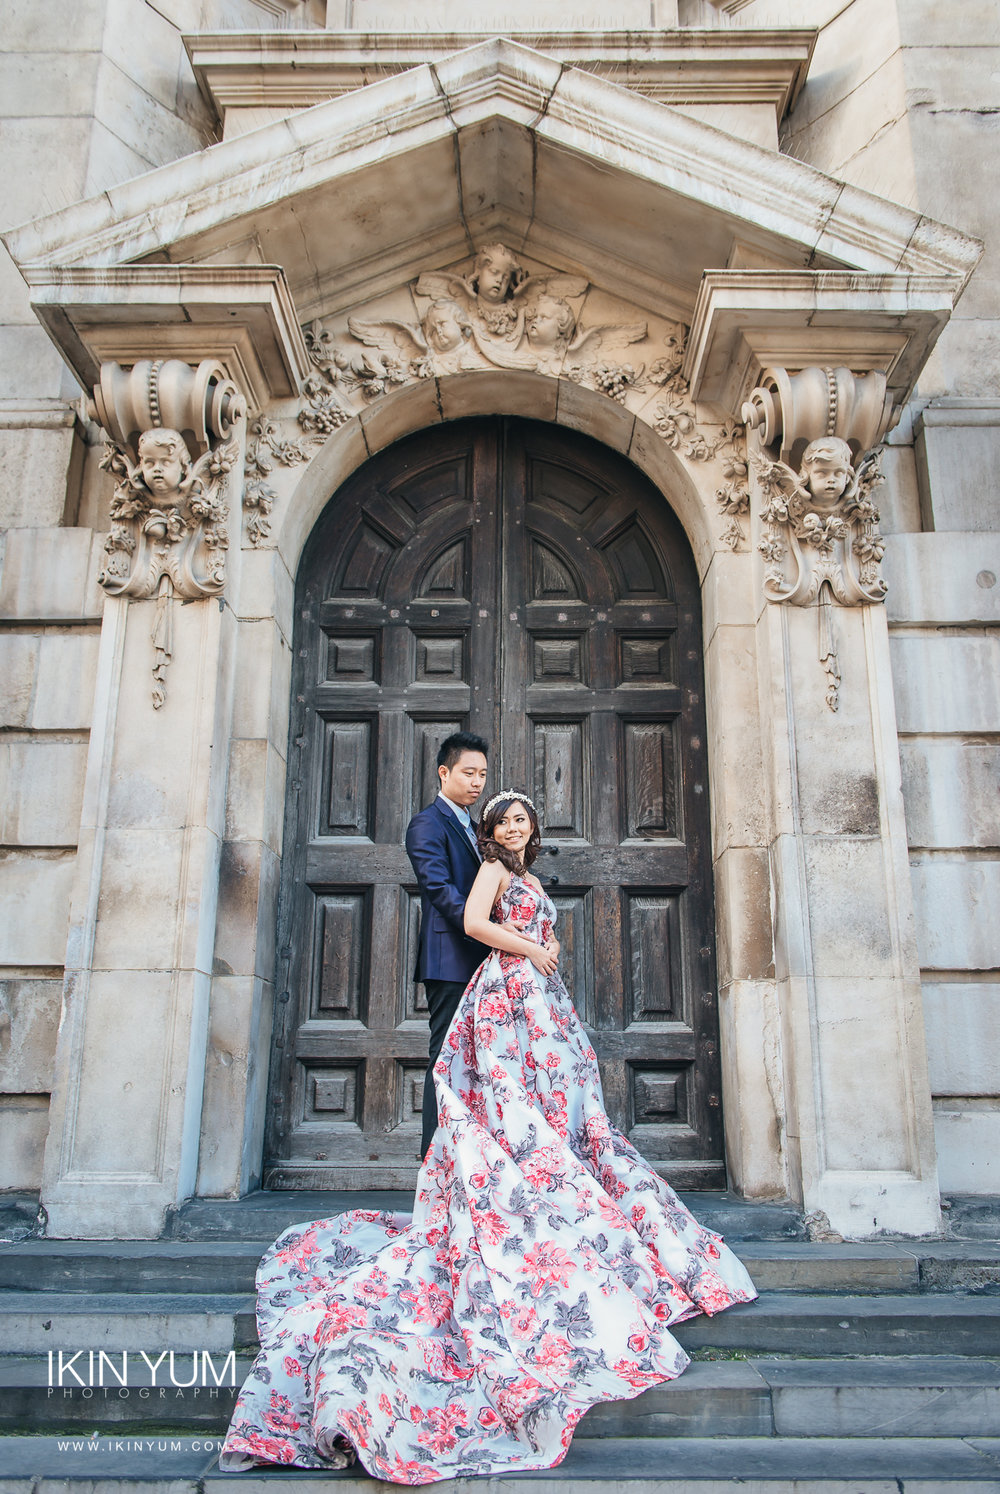 Pre-Wedding Shoot London Susan + Alvin - Ikin Yum Photography-004.jpg